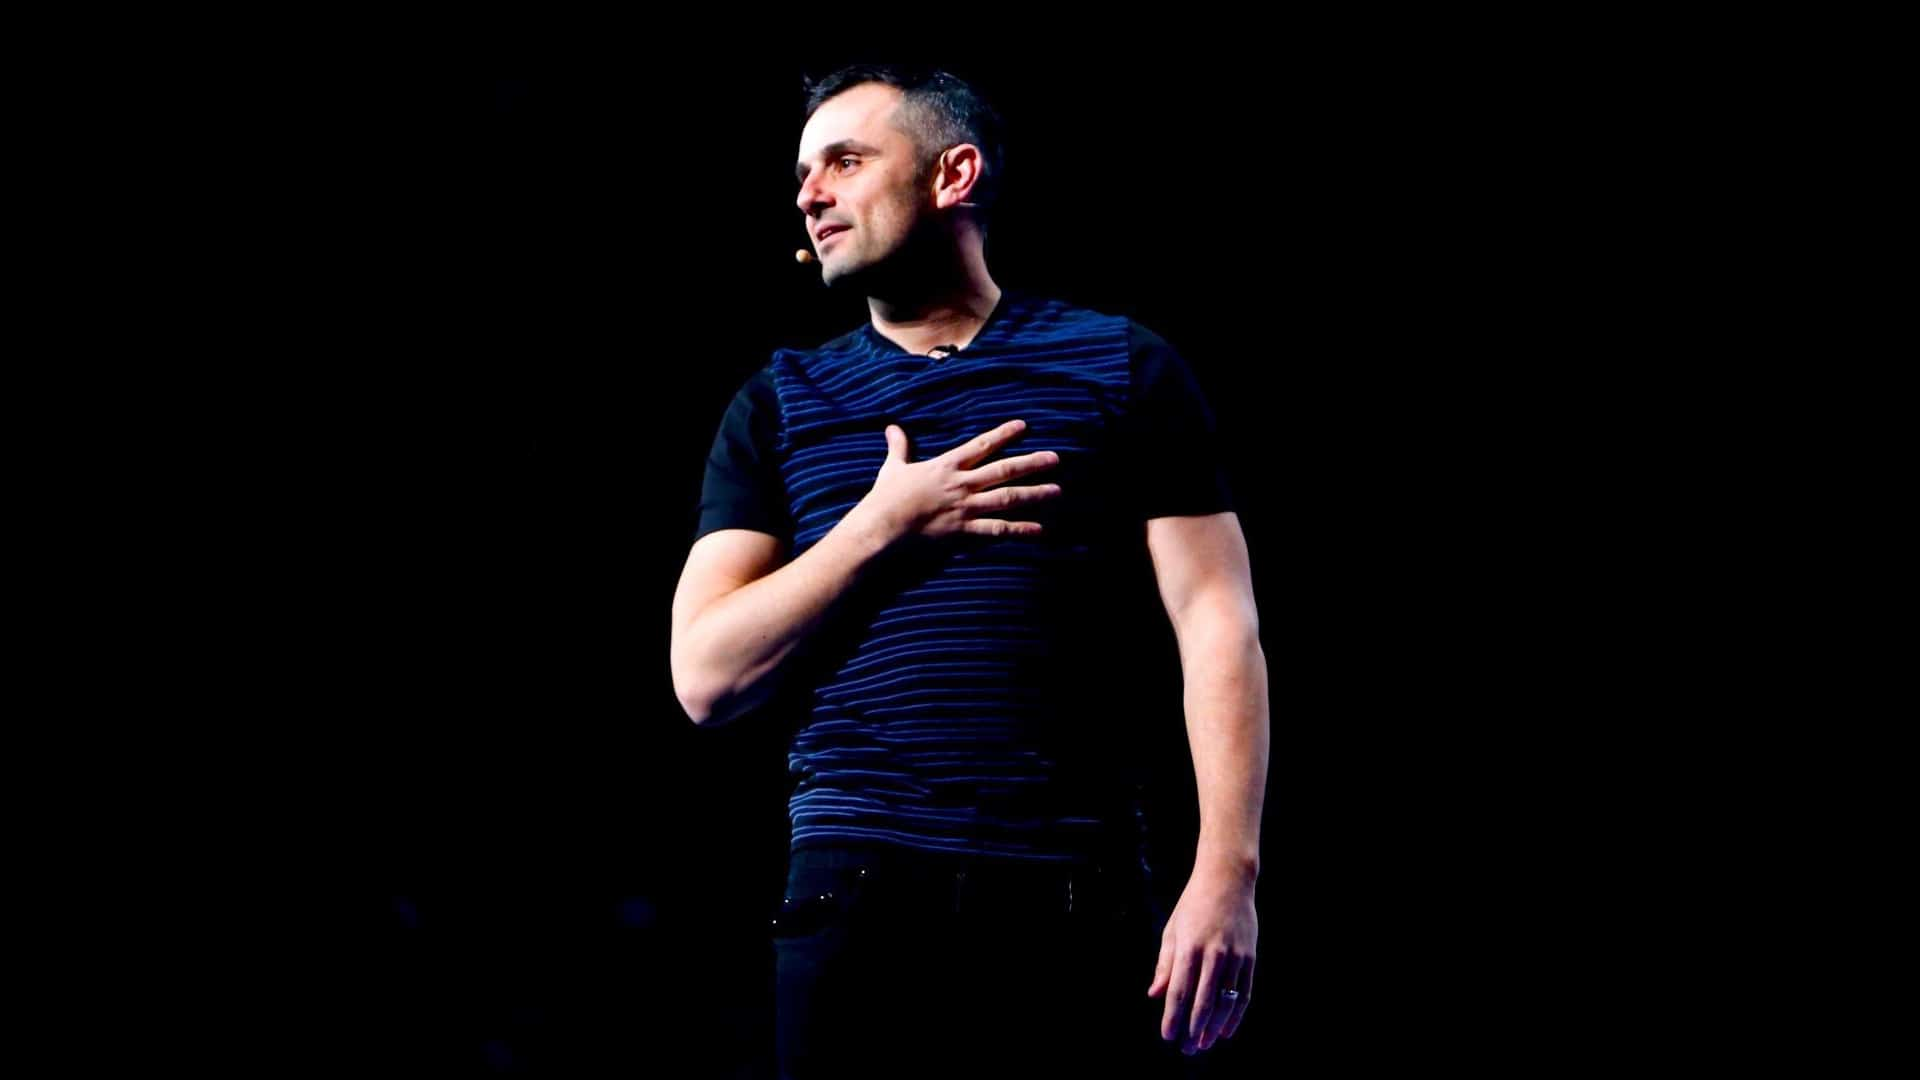 Gary Vee 98-99% of NFTs will not turn out to be good investments